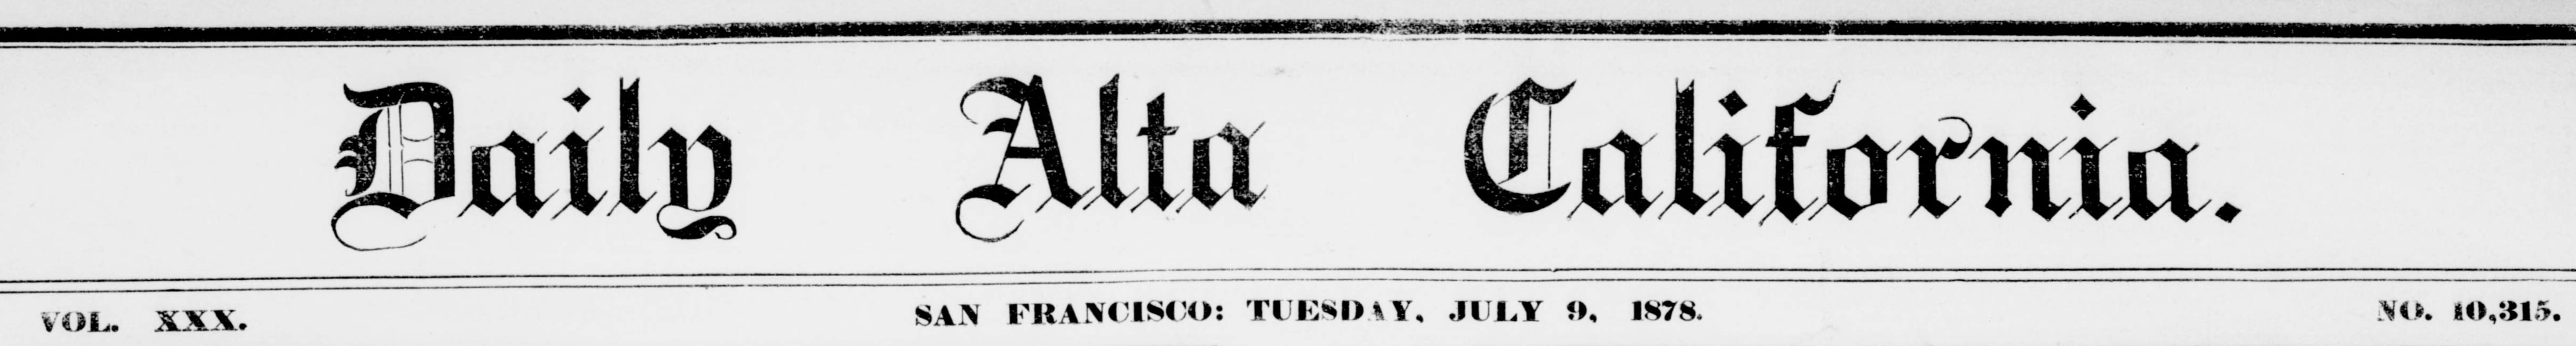 Daily alta California